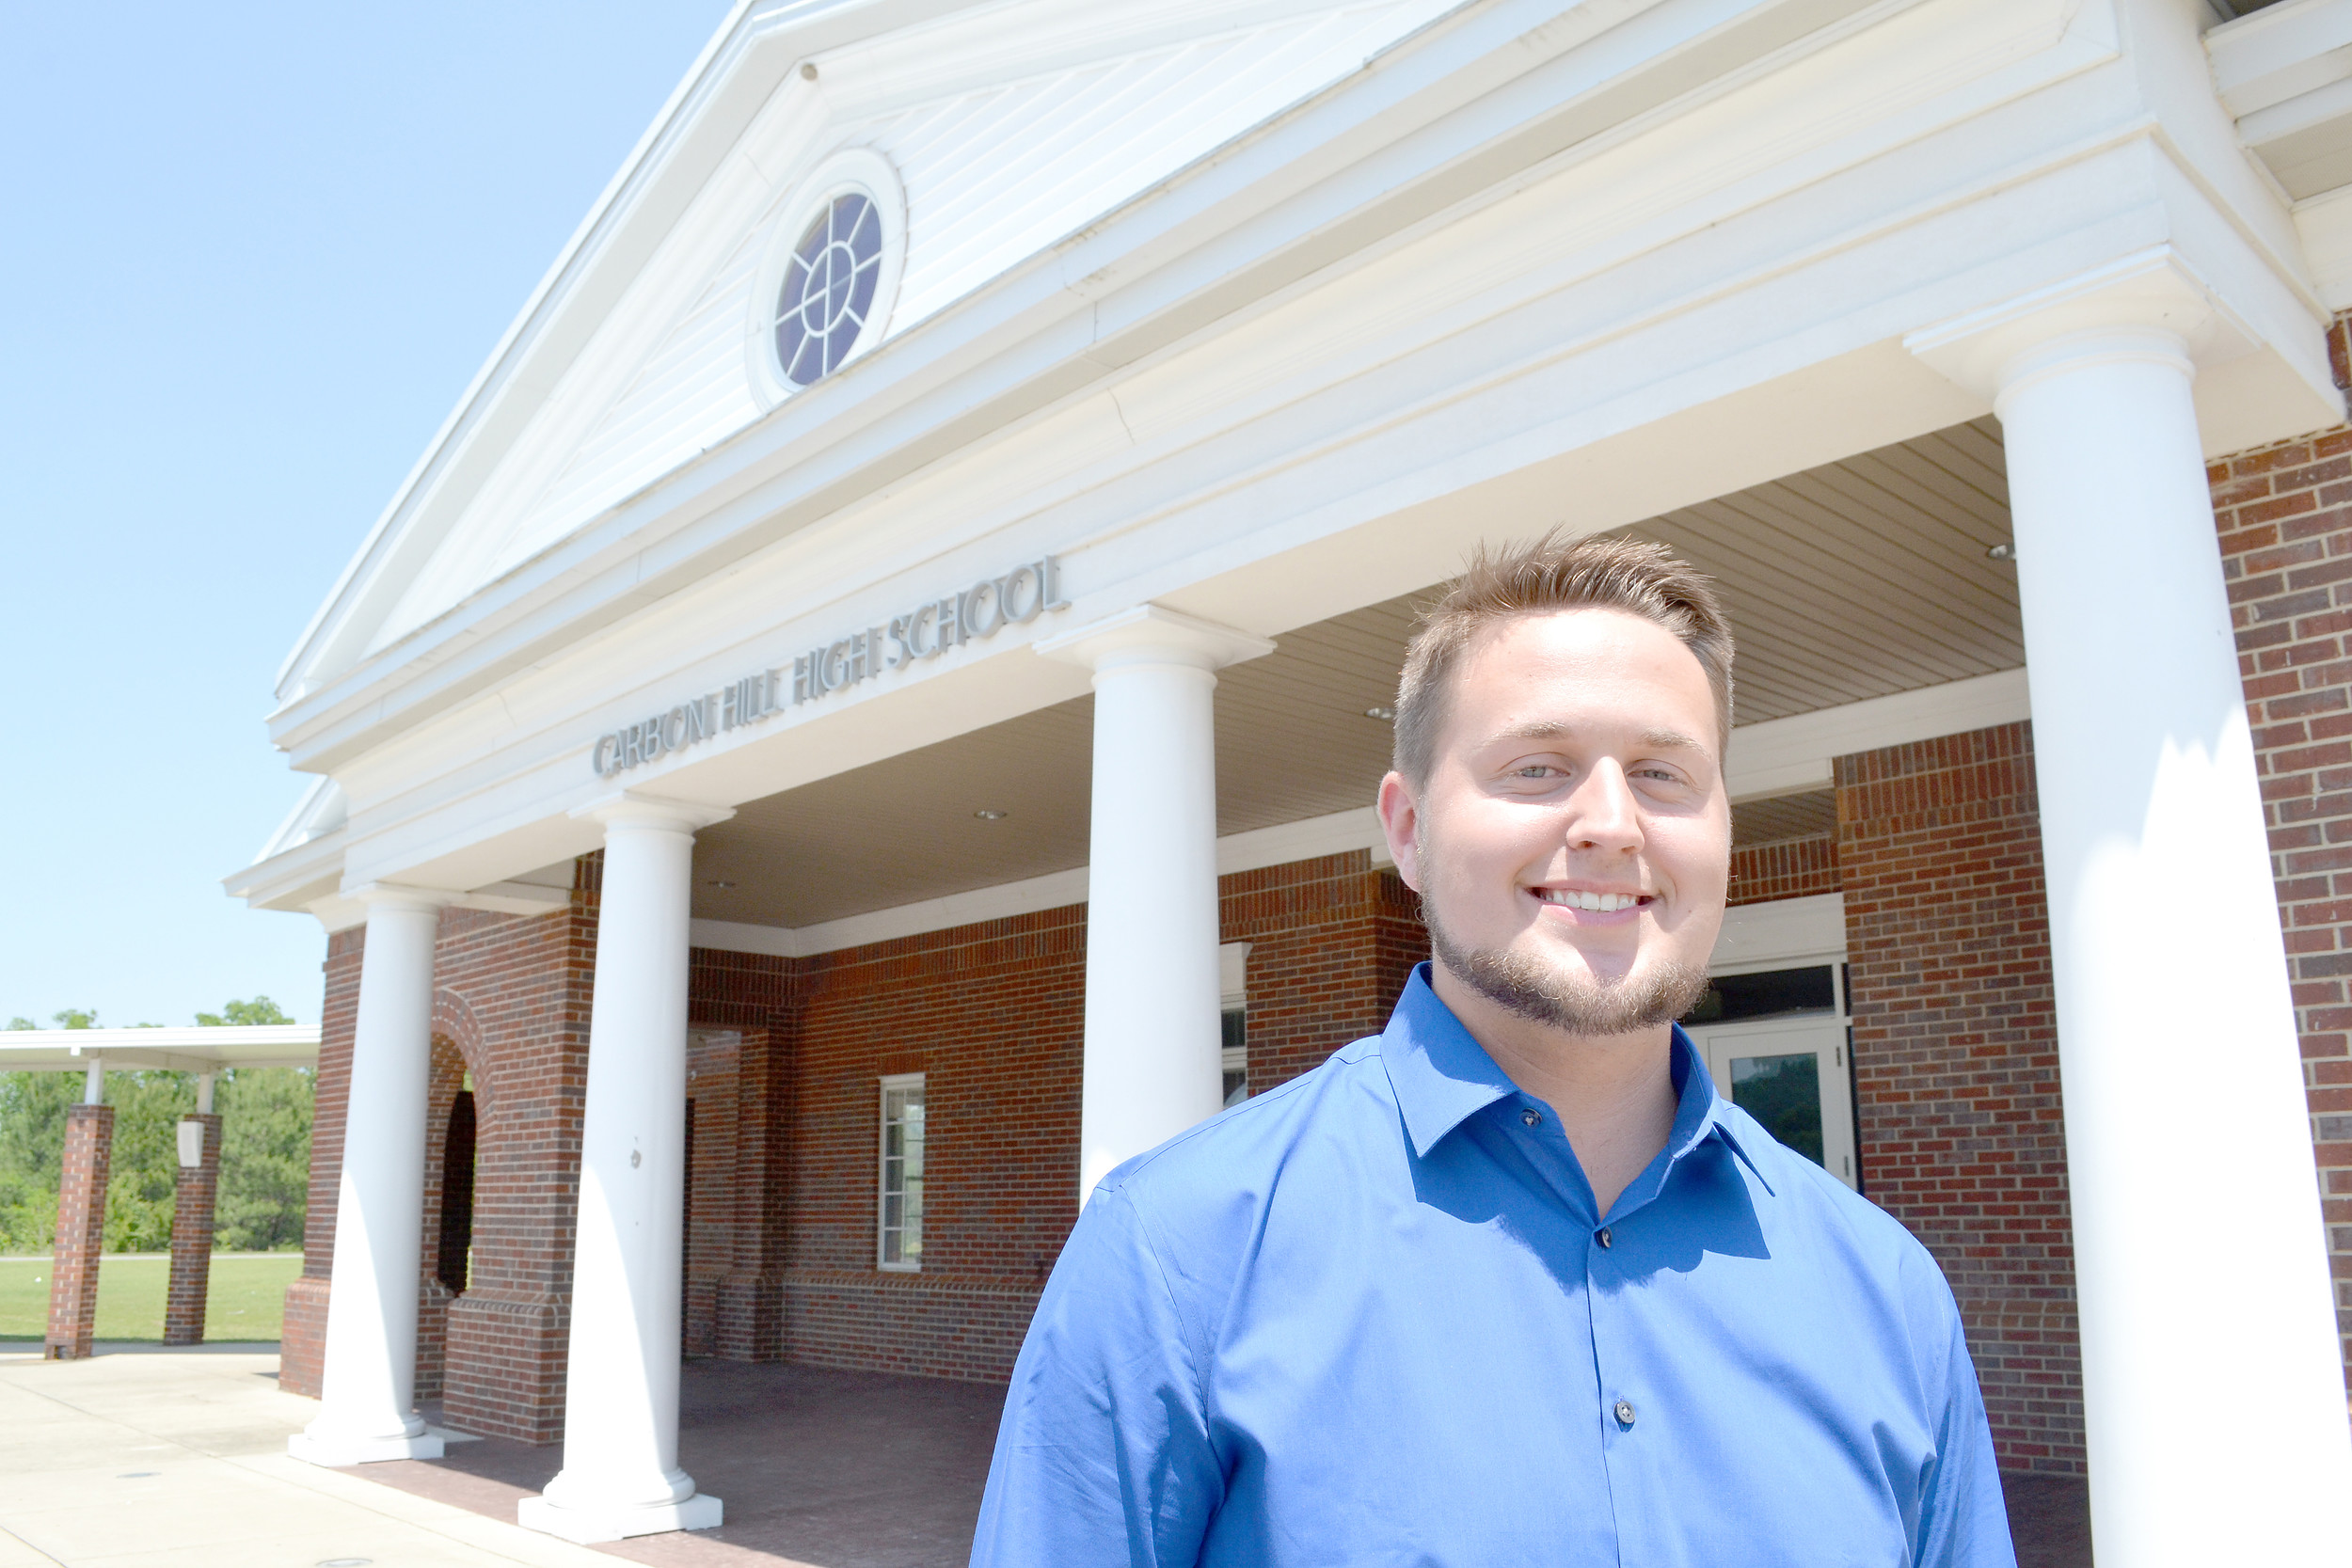 Gunner Wise, who is graduating from Carbon Hill High School this week, is known as a member of the Bulldogs' golf team, but also as a likeable, quiet leader behind the scenes on campus. Daily Mountain Eagle - Ed Howell